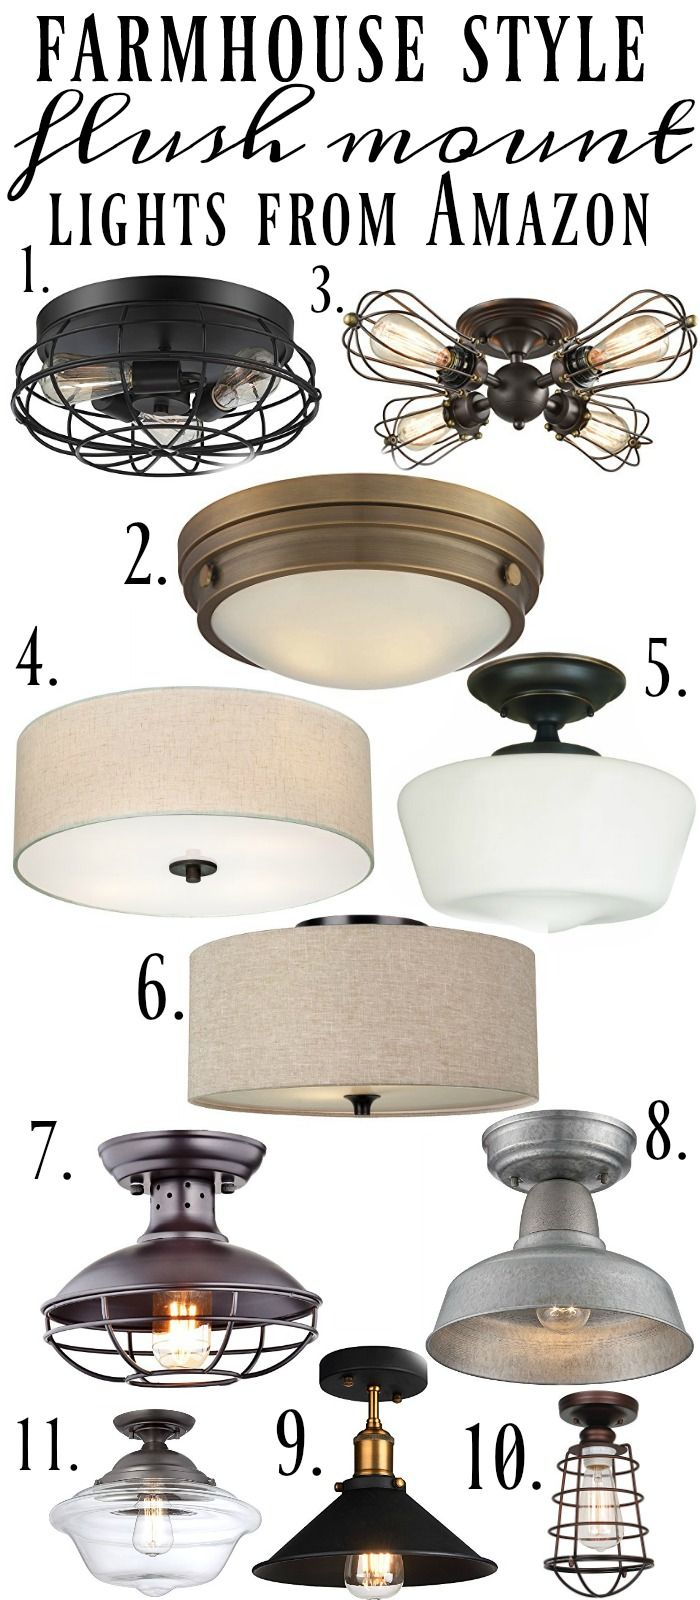 Farmhouse flush mount lights farmhouse love pinterest flush the best farmhouse flush mount lights all from amazon a great pin for farmhouse decor and inspiration aloadofball